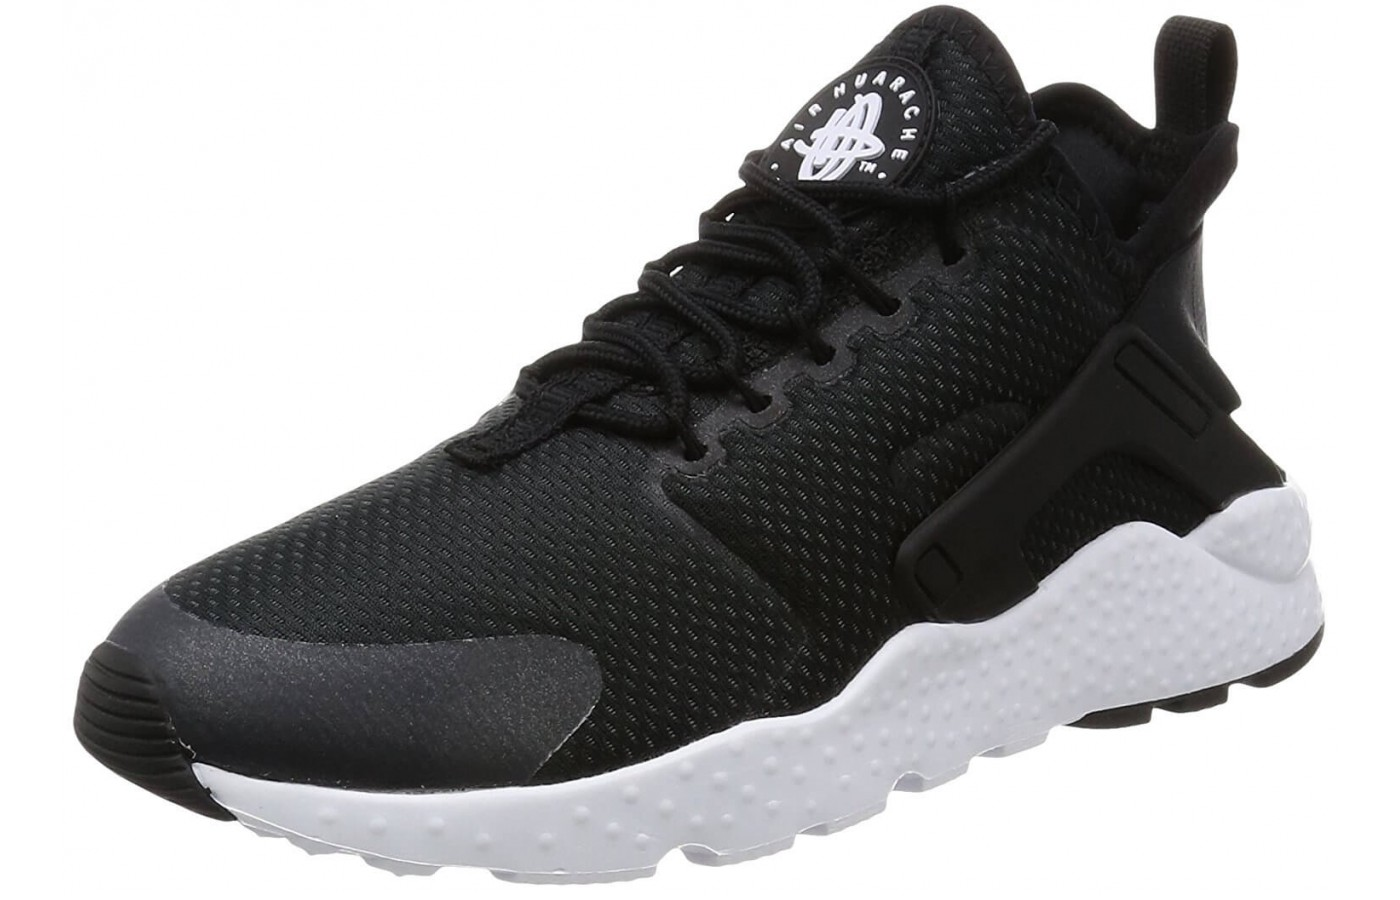 huge selection of d7878 c9a6a Although the Nike Air Huarache Ultra has a slight heel drop, it is much  less ...